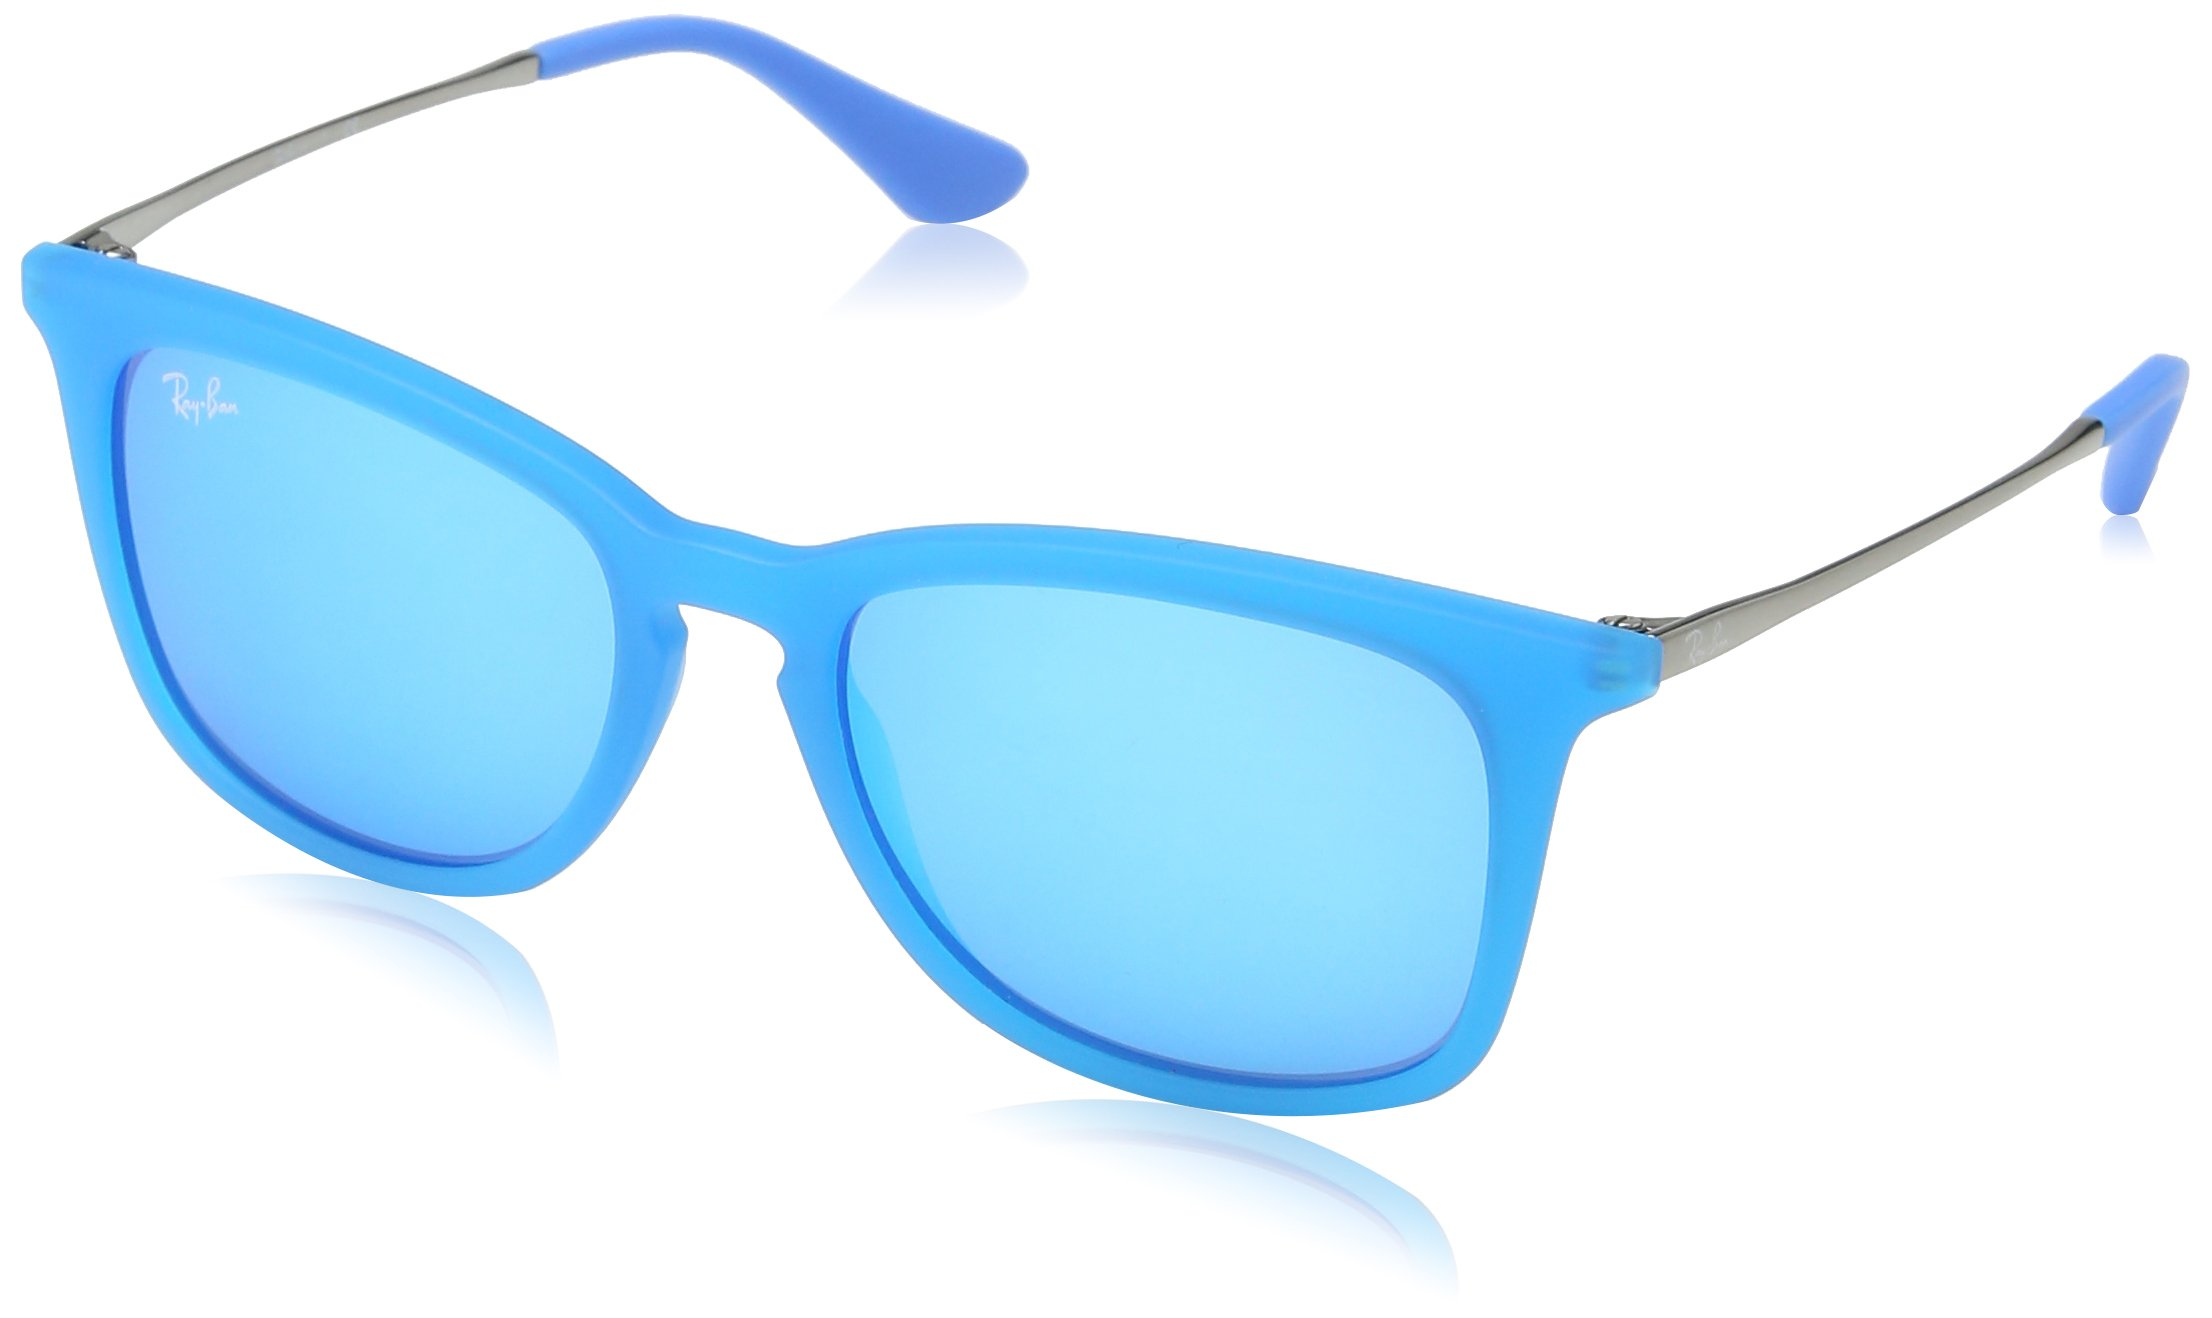 Ray-Ban Unisex-Child Injected Unisex Sunglass 0RJ9063S Square Sunglasses, Azure Fluo Trasp Rubber, 48 mm